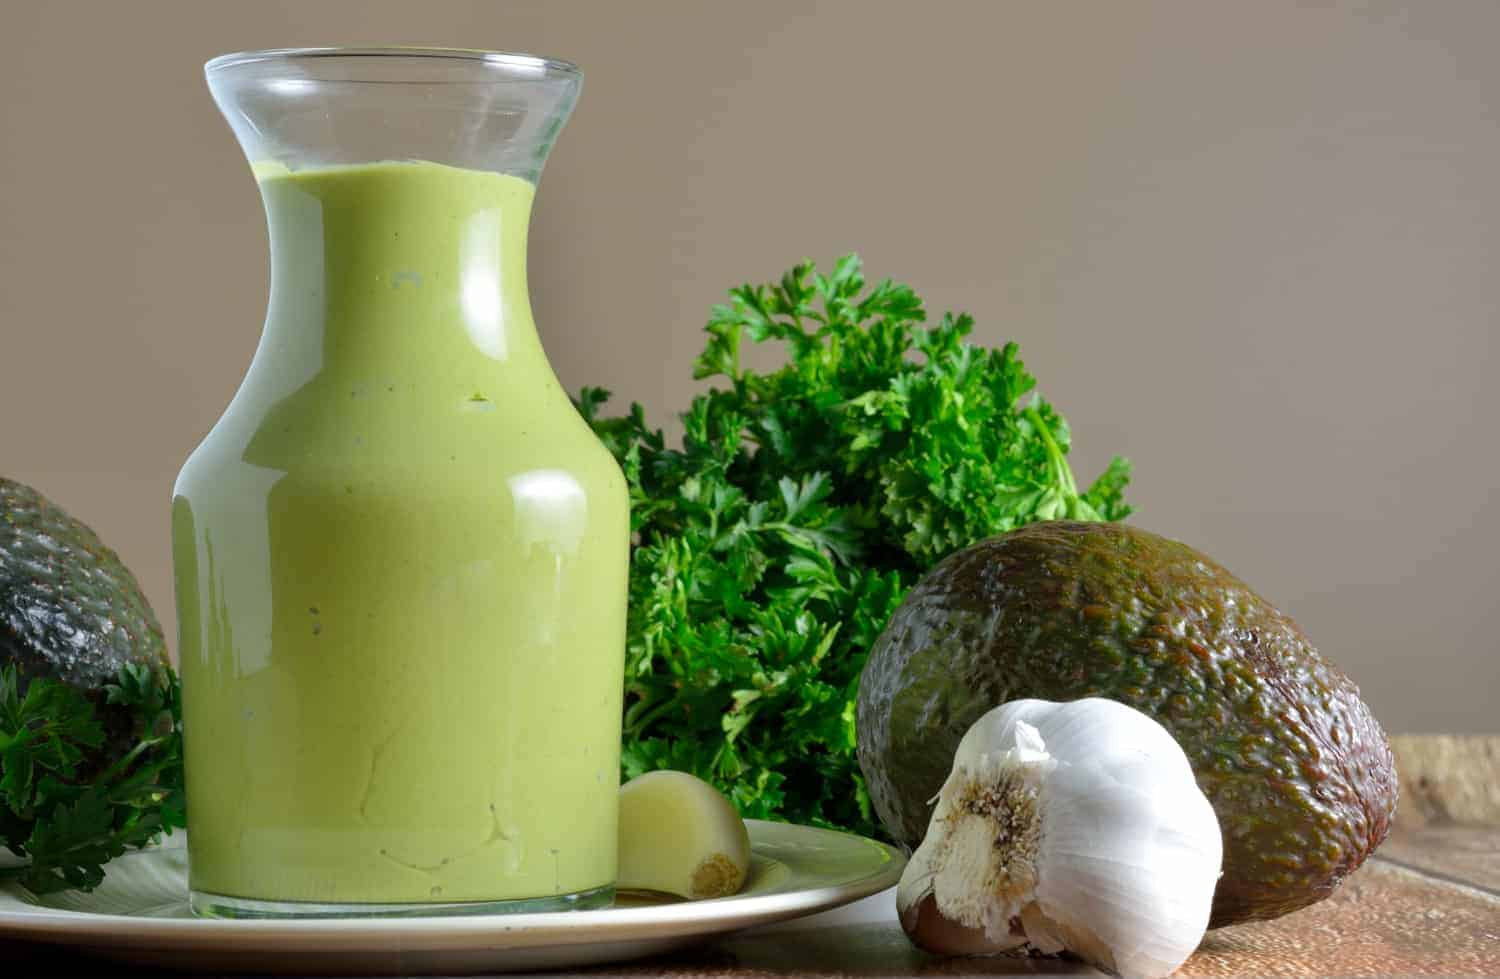 Avocado Green Goddess Dressing Recipe- A tangy and creamy condiment packed with nutrient dense ingredients like avocado, garlic, parsley and yogurt. Serve as a dipping sauce, spread on sandwiches or salad dressing.